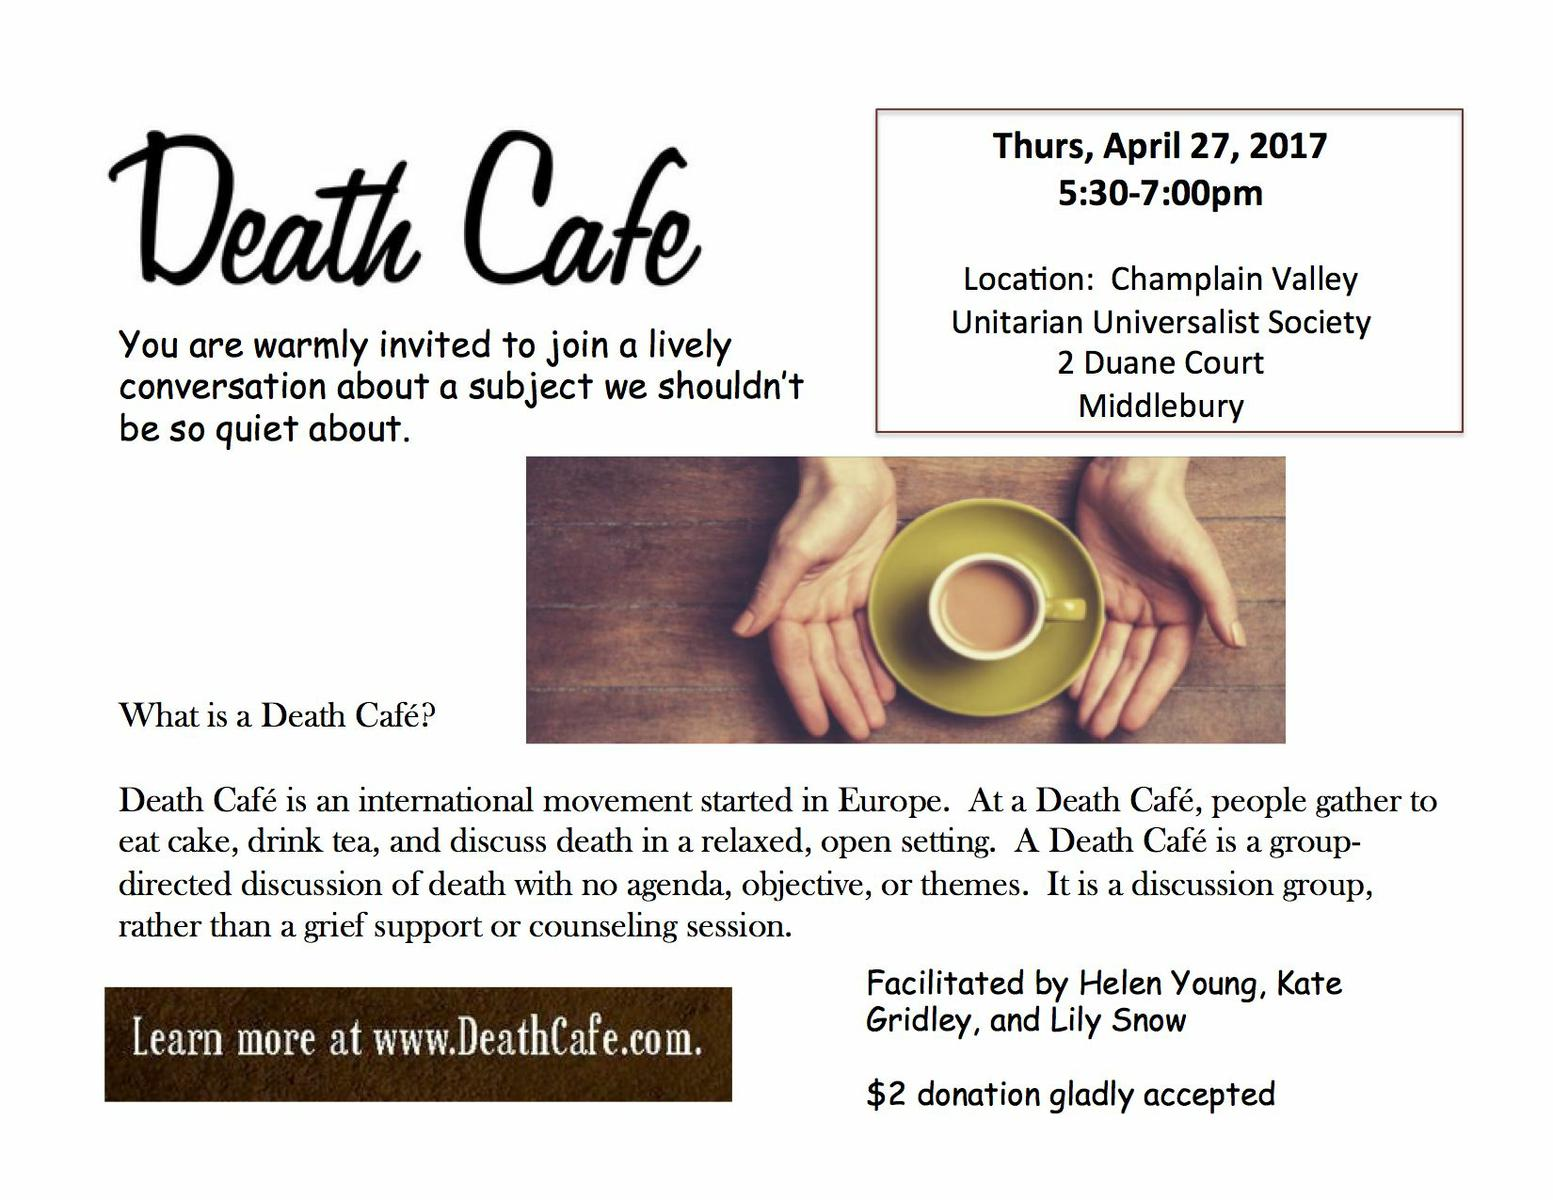 Death Cafe Middlebury